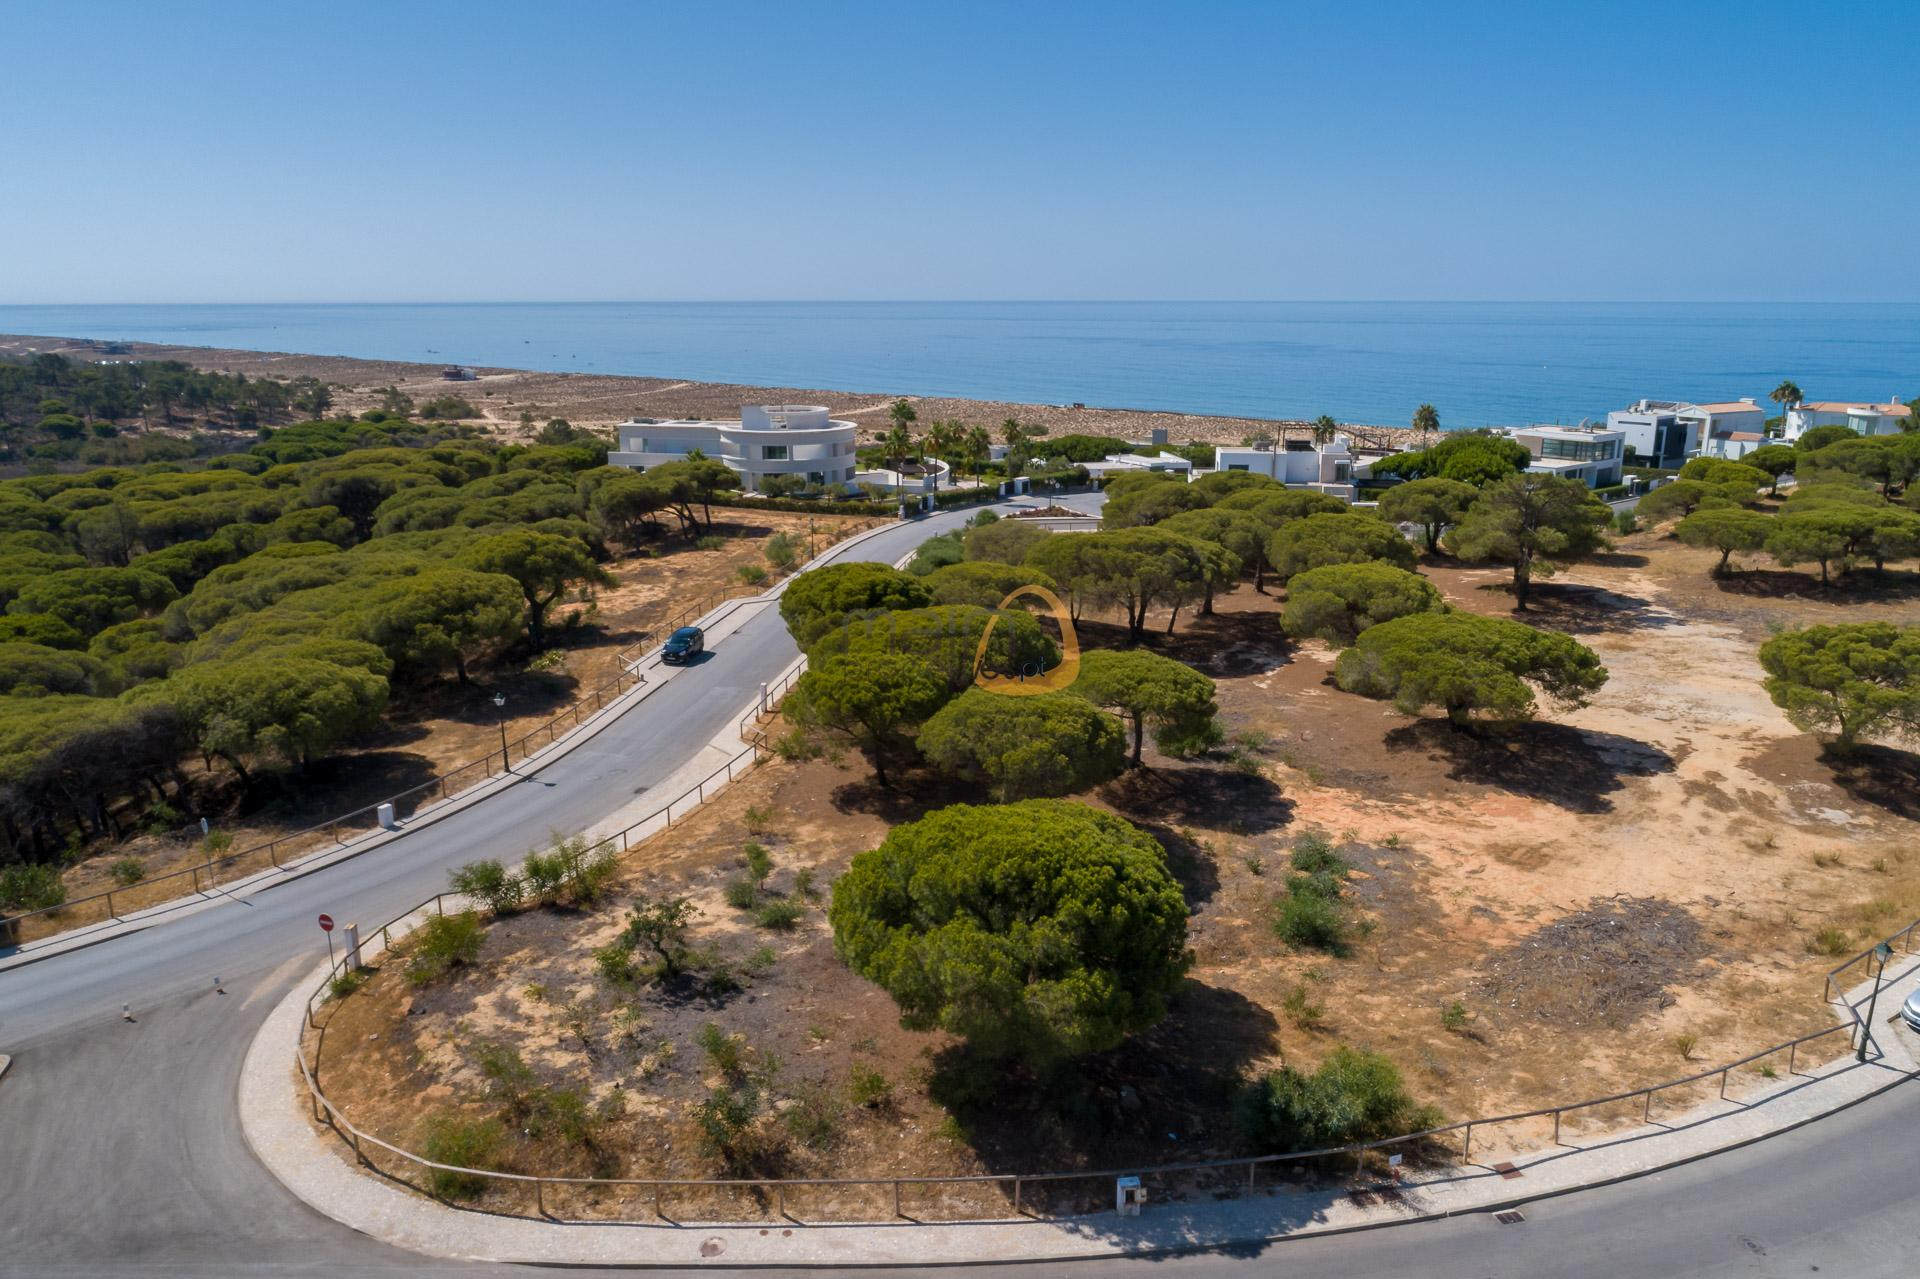 land-plot-villa-in-vale-do-lobo-golden-triangle-algarve-portugal-real-estate-property-mp141vdl-2